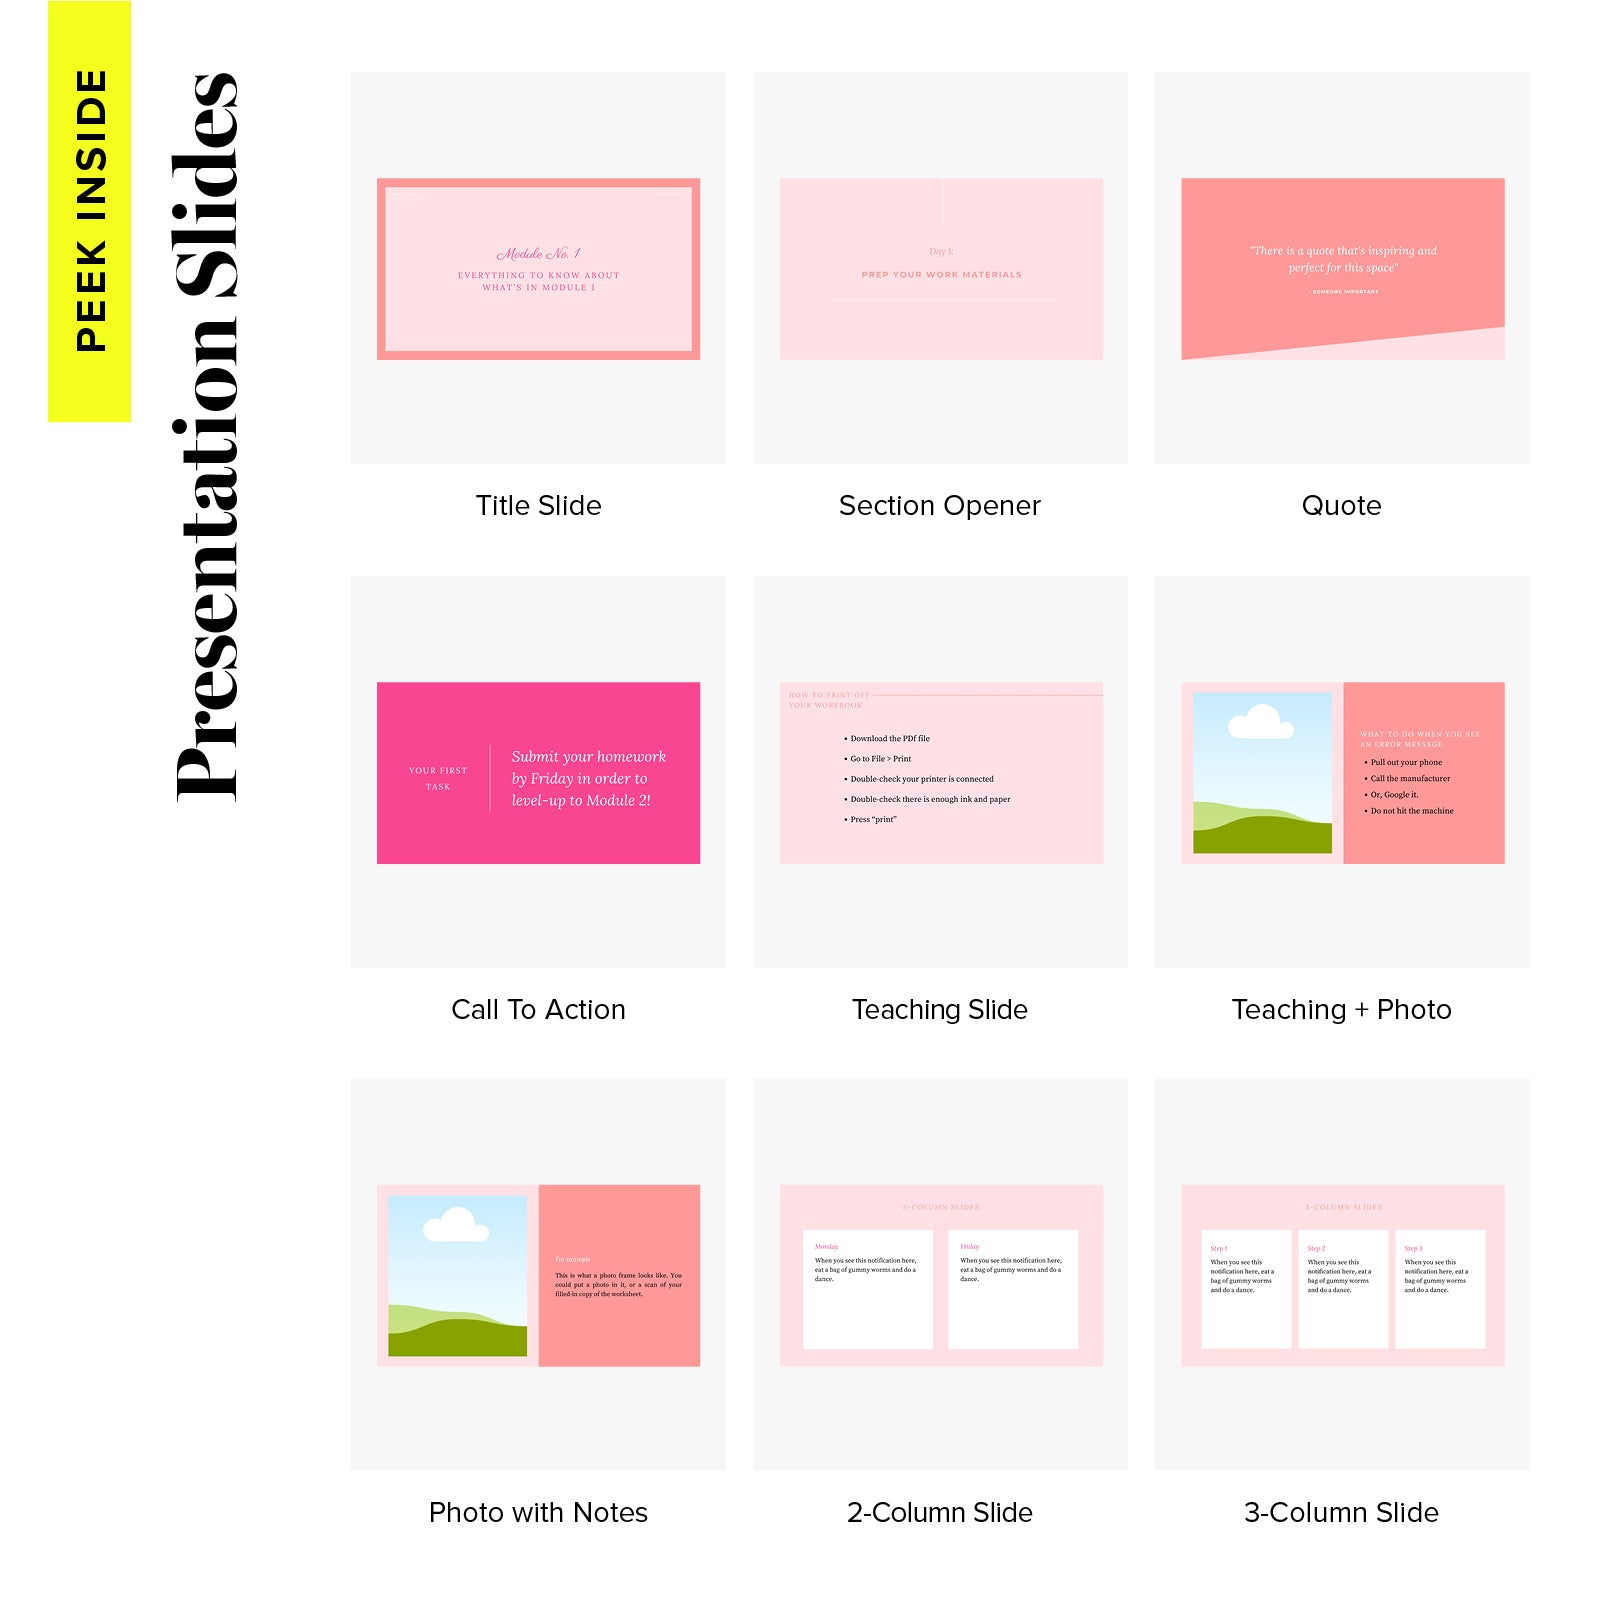 Course Design Kit Slides - Sweet Sophisticate